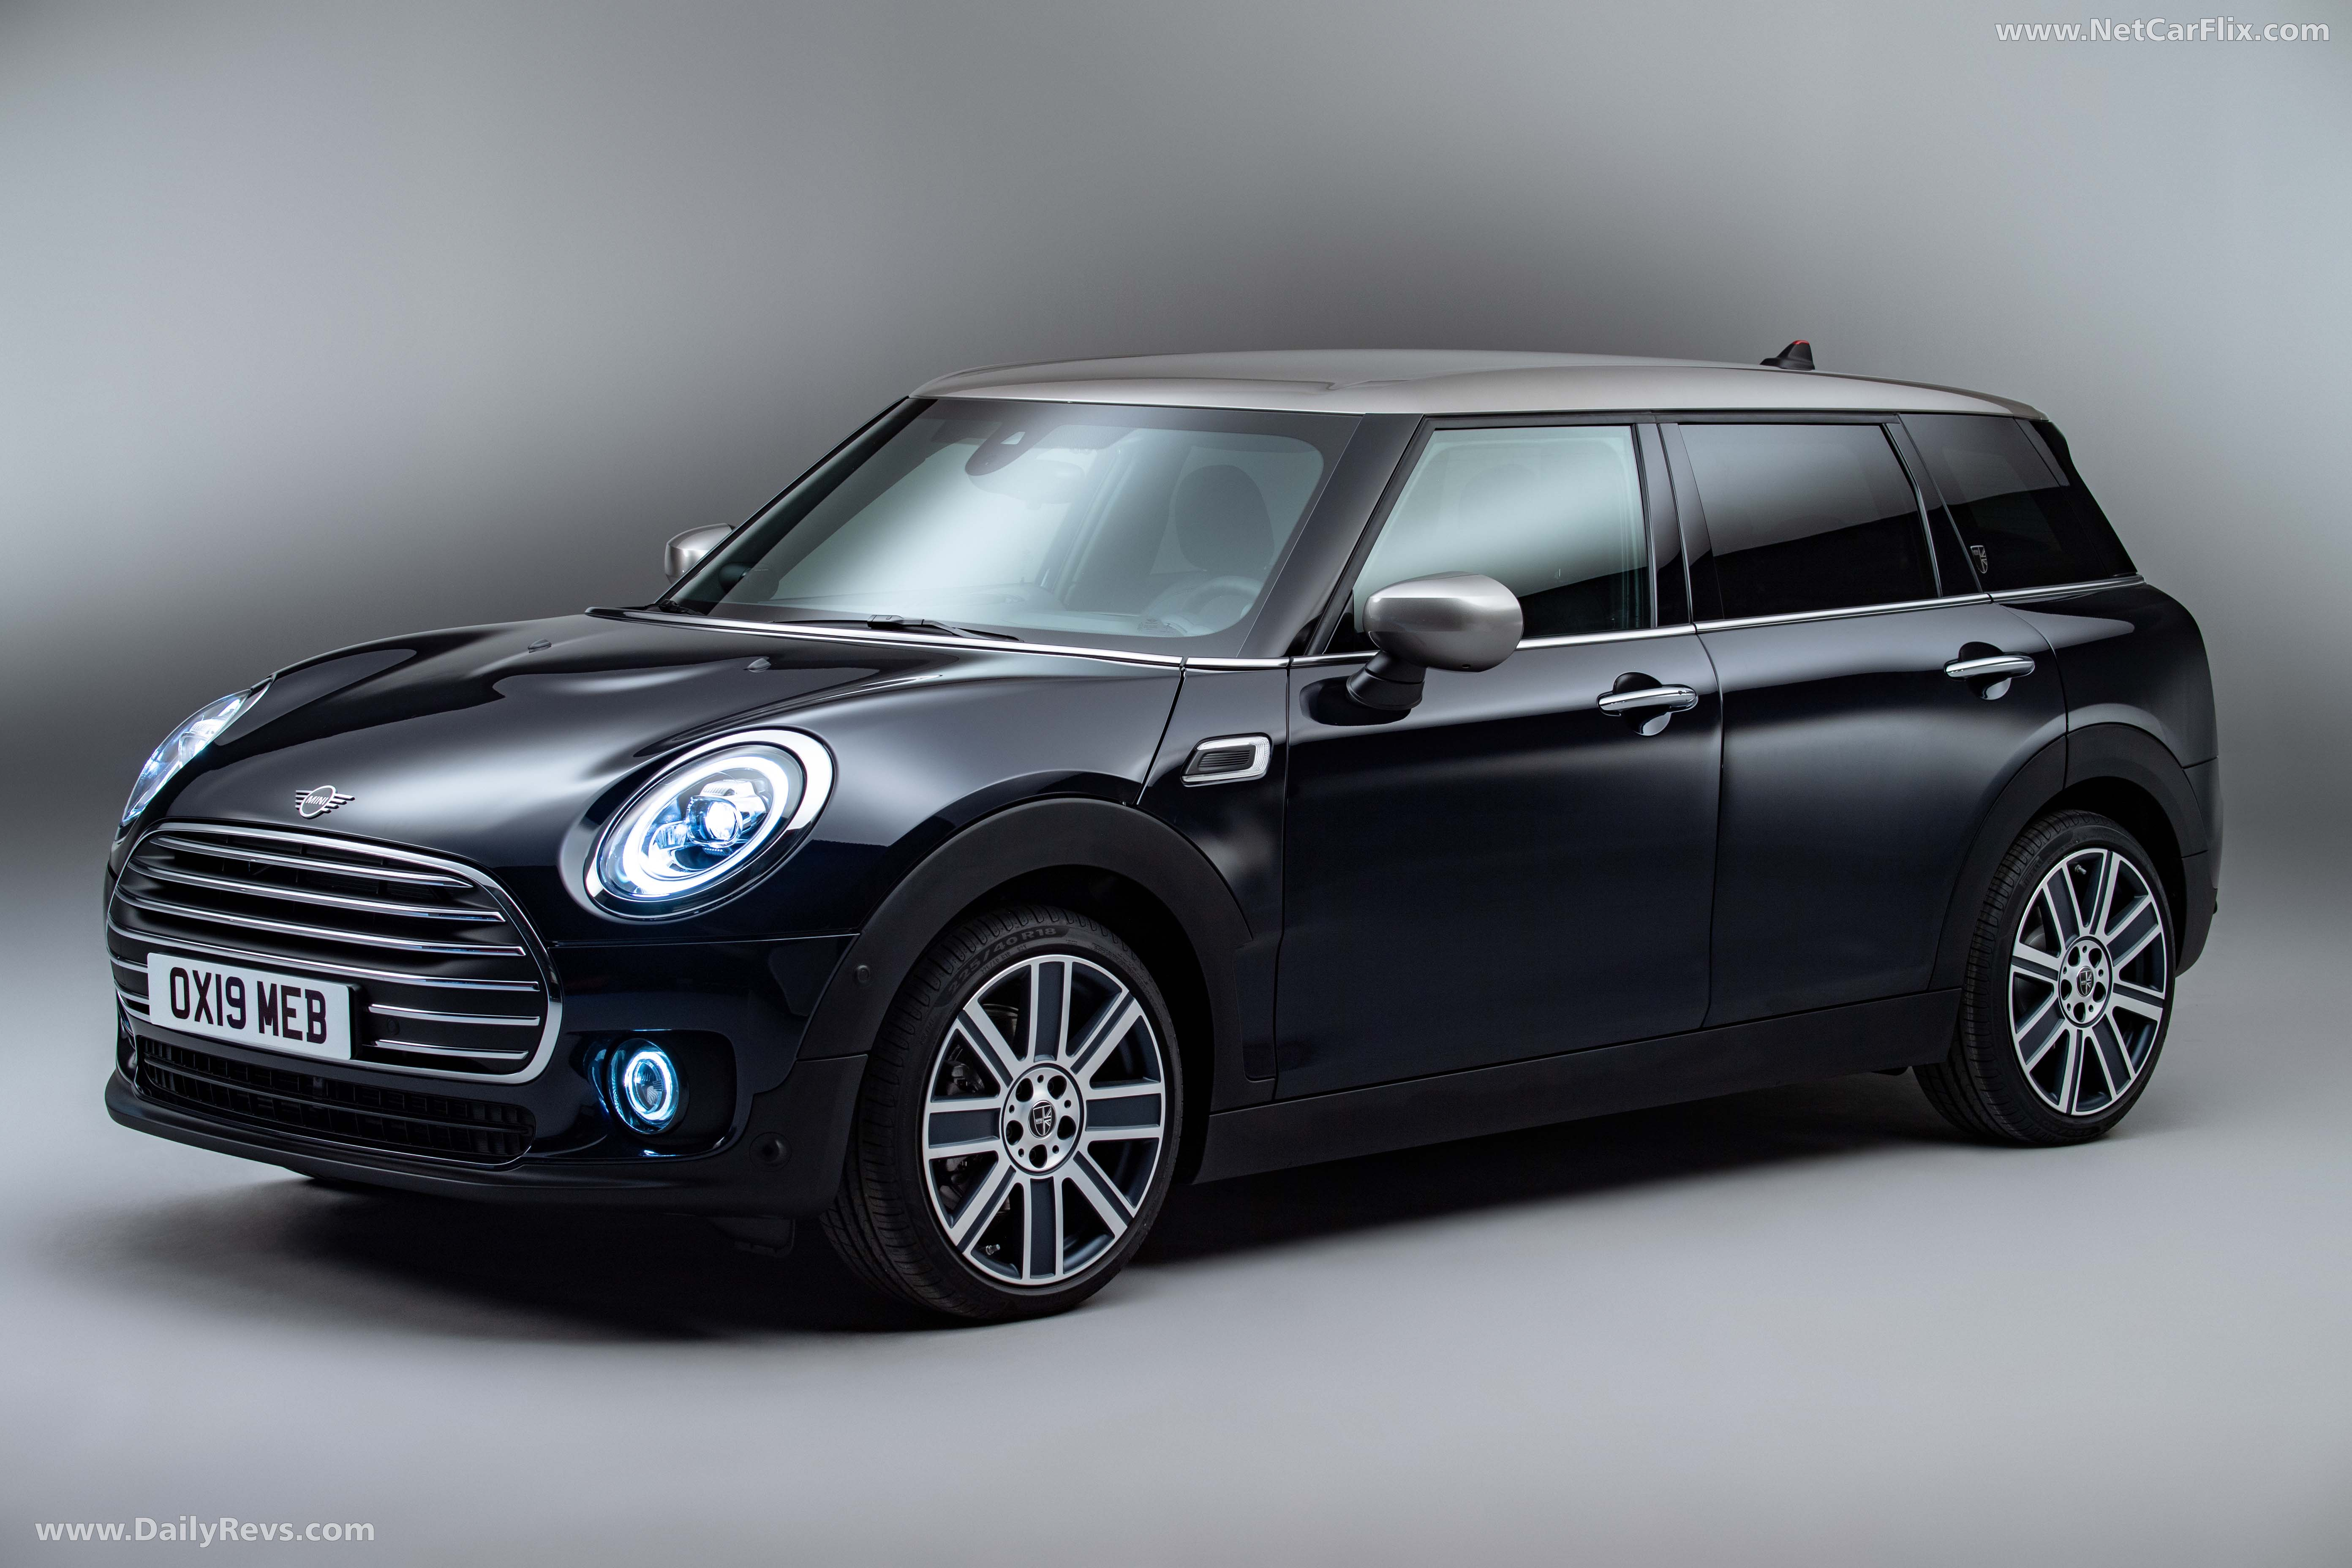 2020 Mini Clubman - HD Pictures, Videos, Specs ...